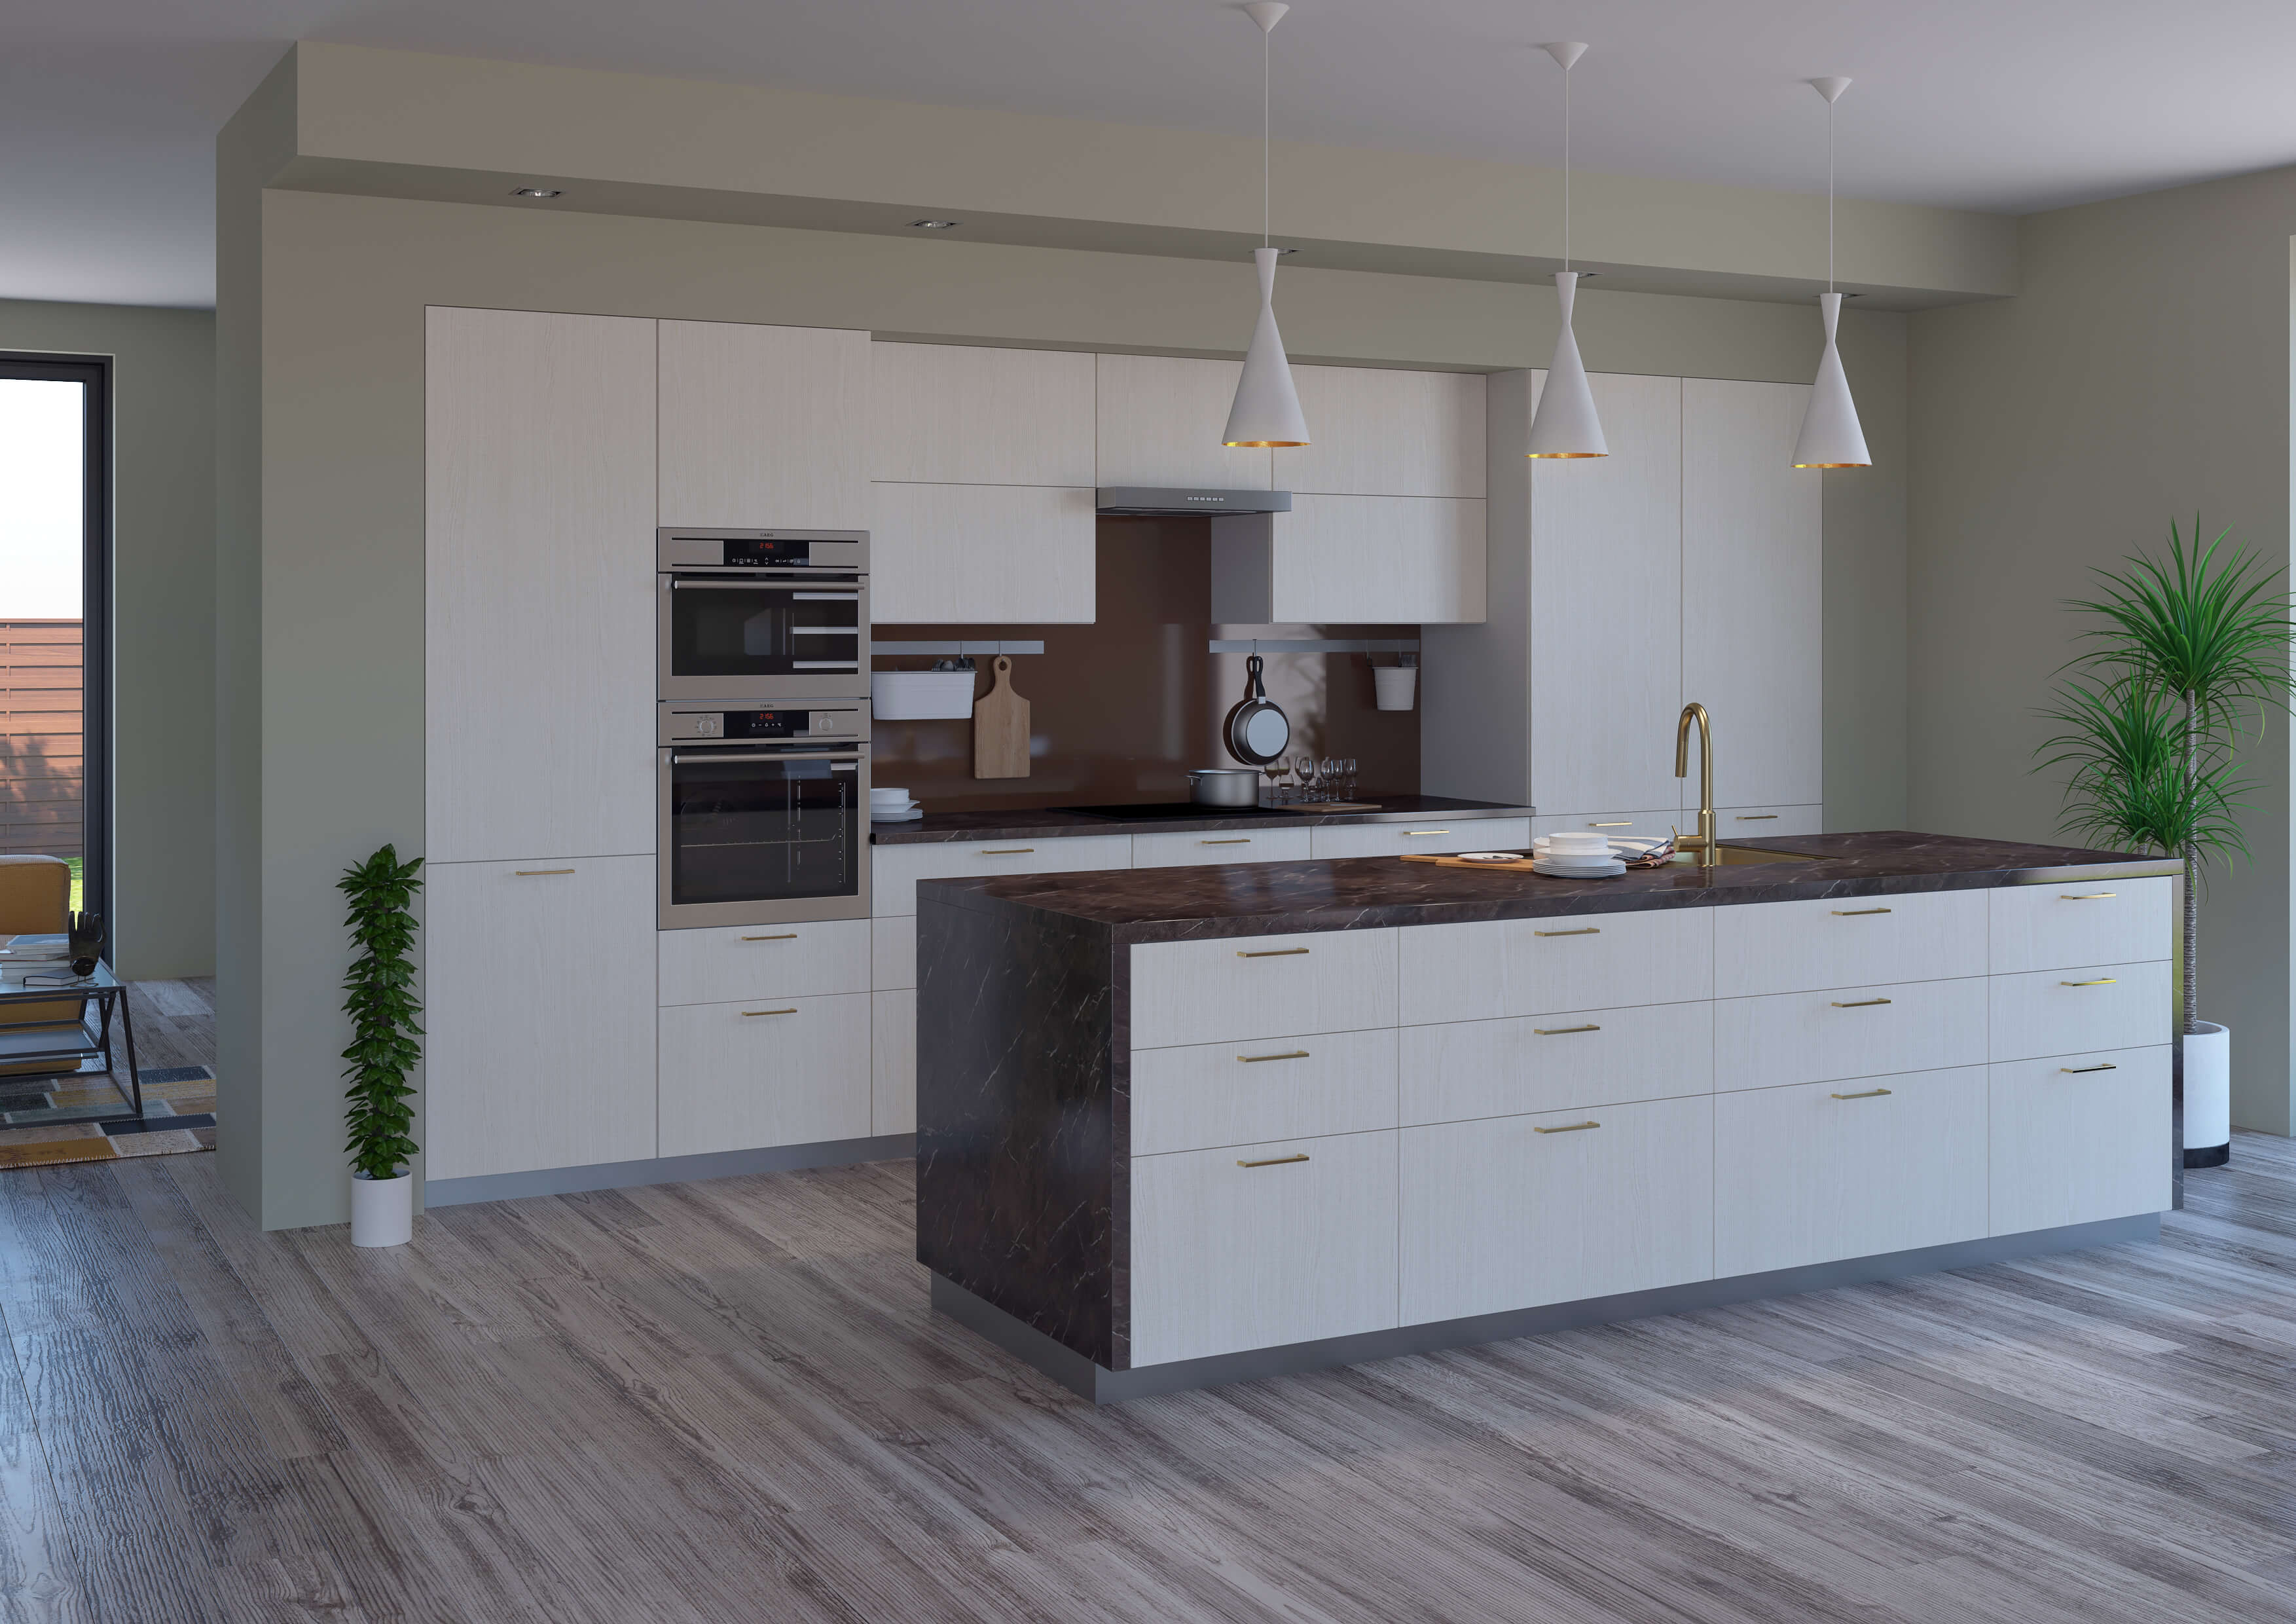 Why Are IKEA Kitchens Such A Good Option For Your Kitchen